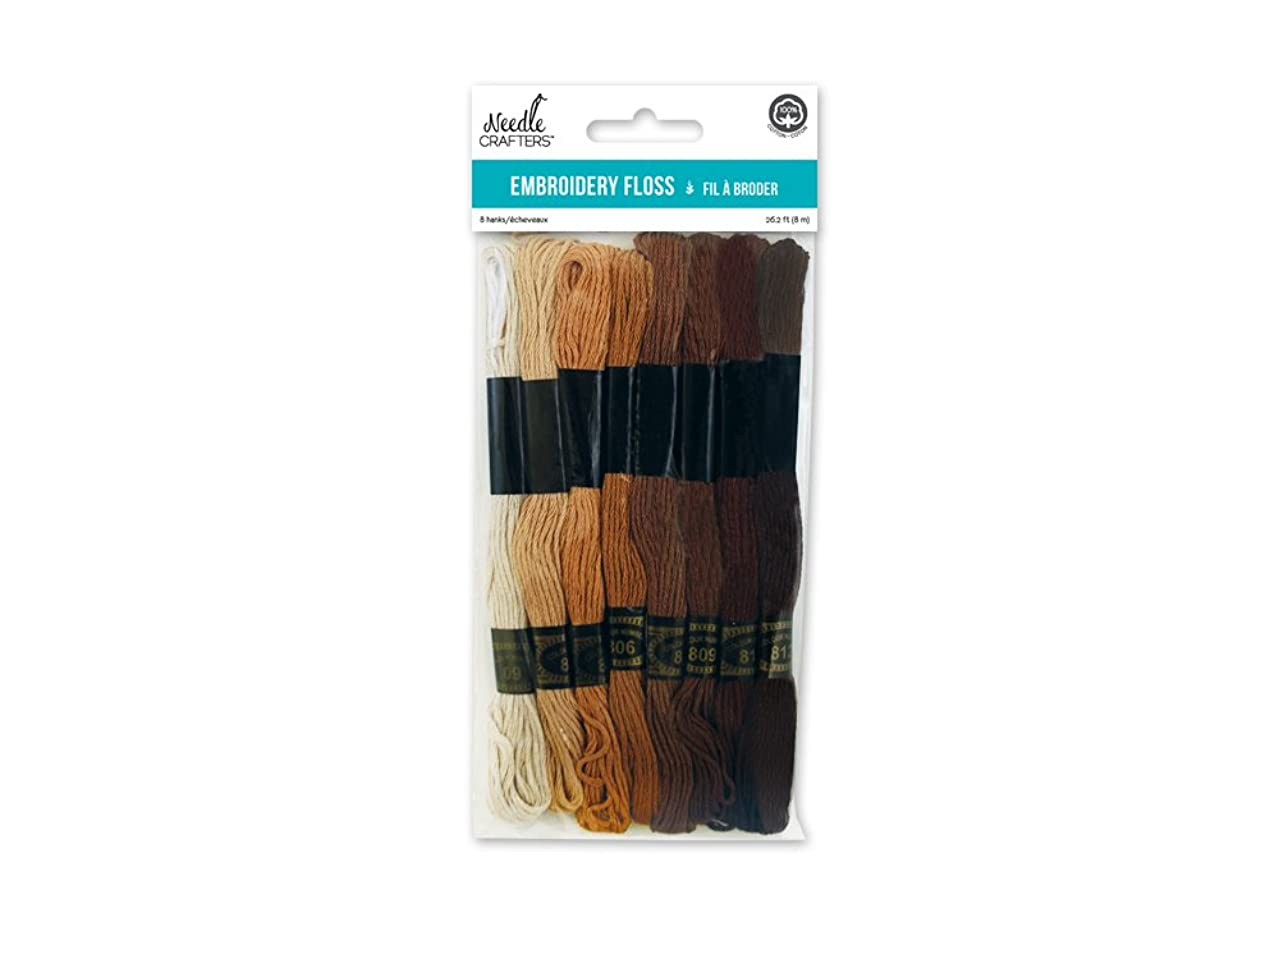 Needlecrafters Cotton Embroidery Floss, 8m, Neutrals,